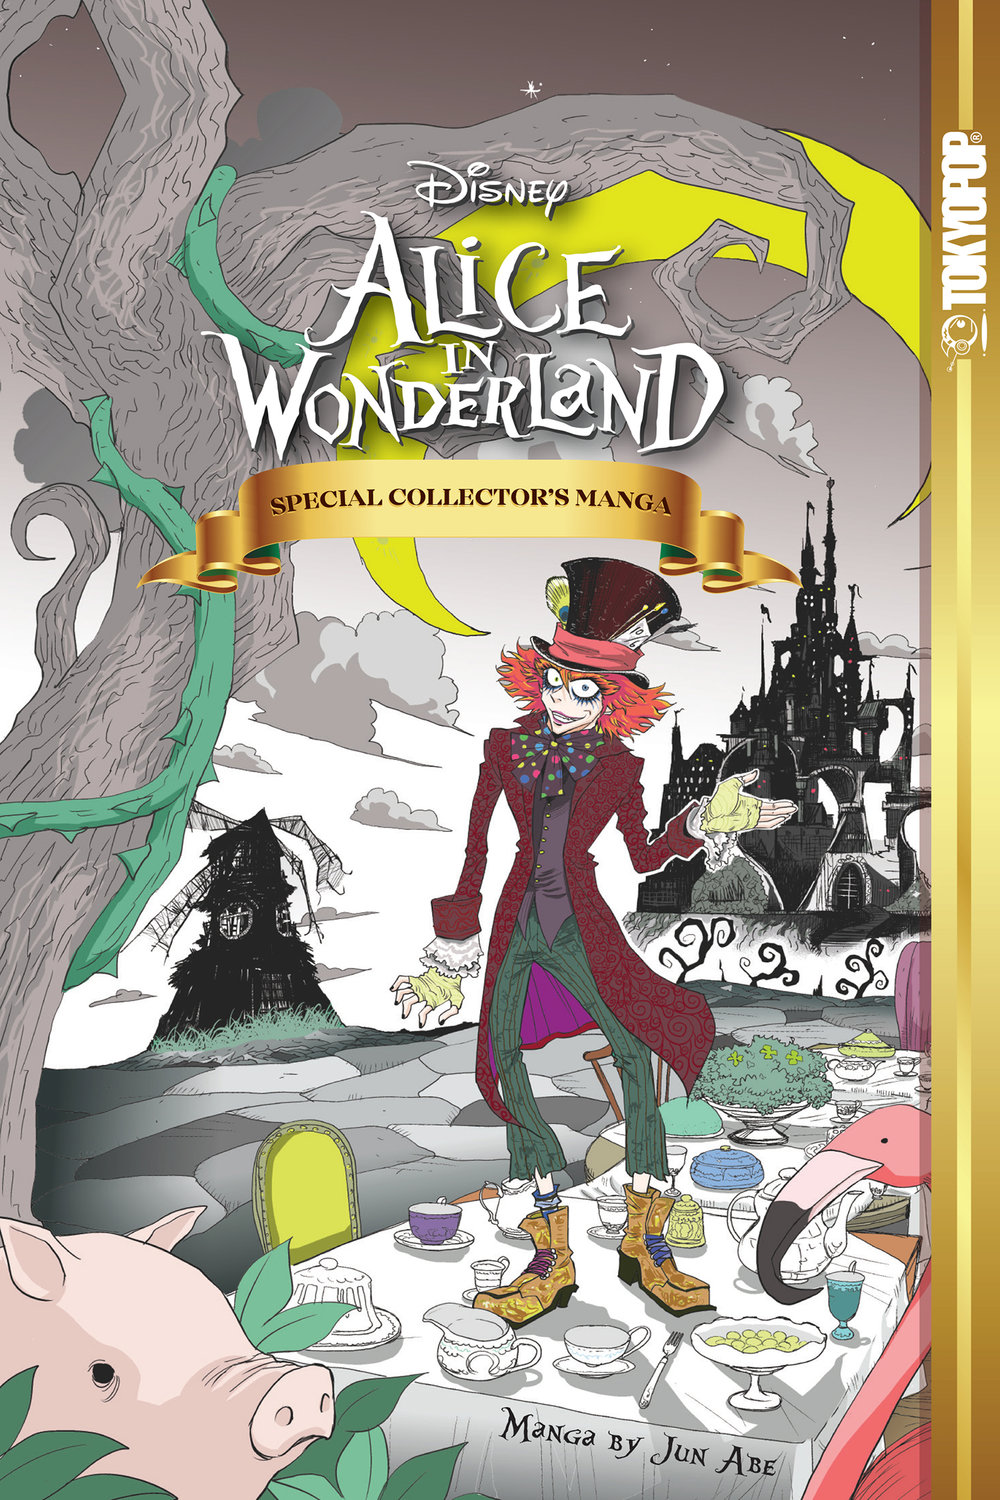 Disney Alice in Wonderland: Special Collector's Edition